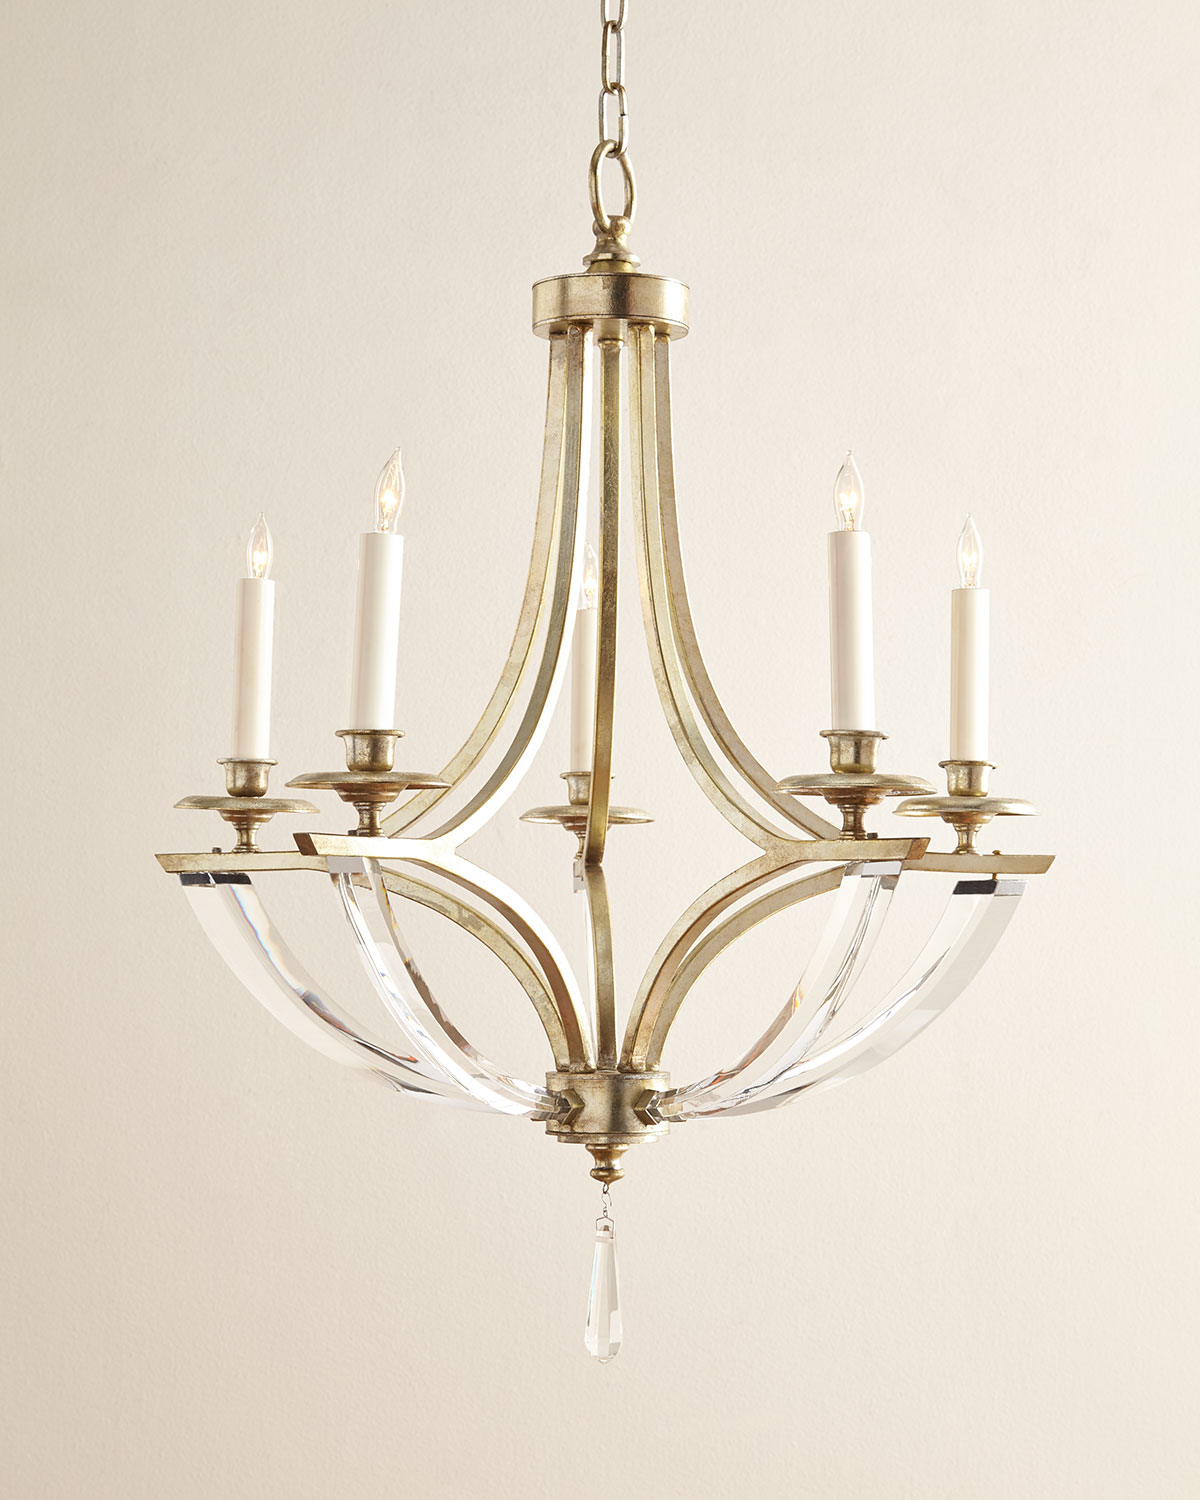 John richard collection bent 5 light crystal chandelier neiman marcus arubaitofo Gallery